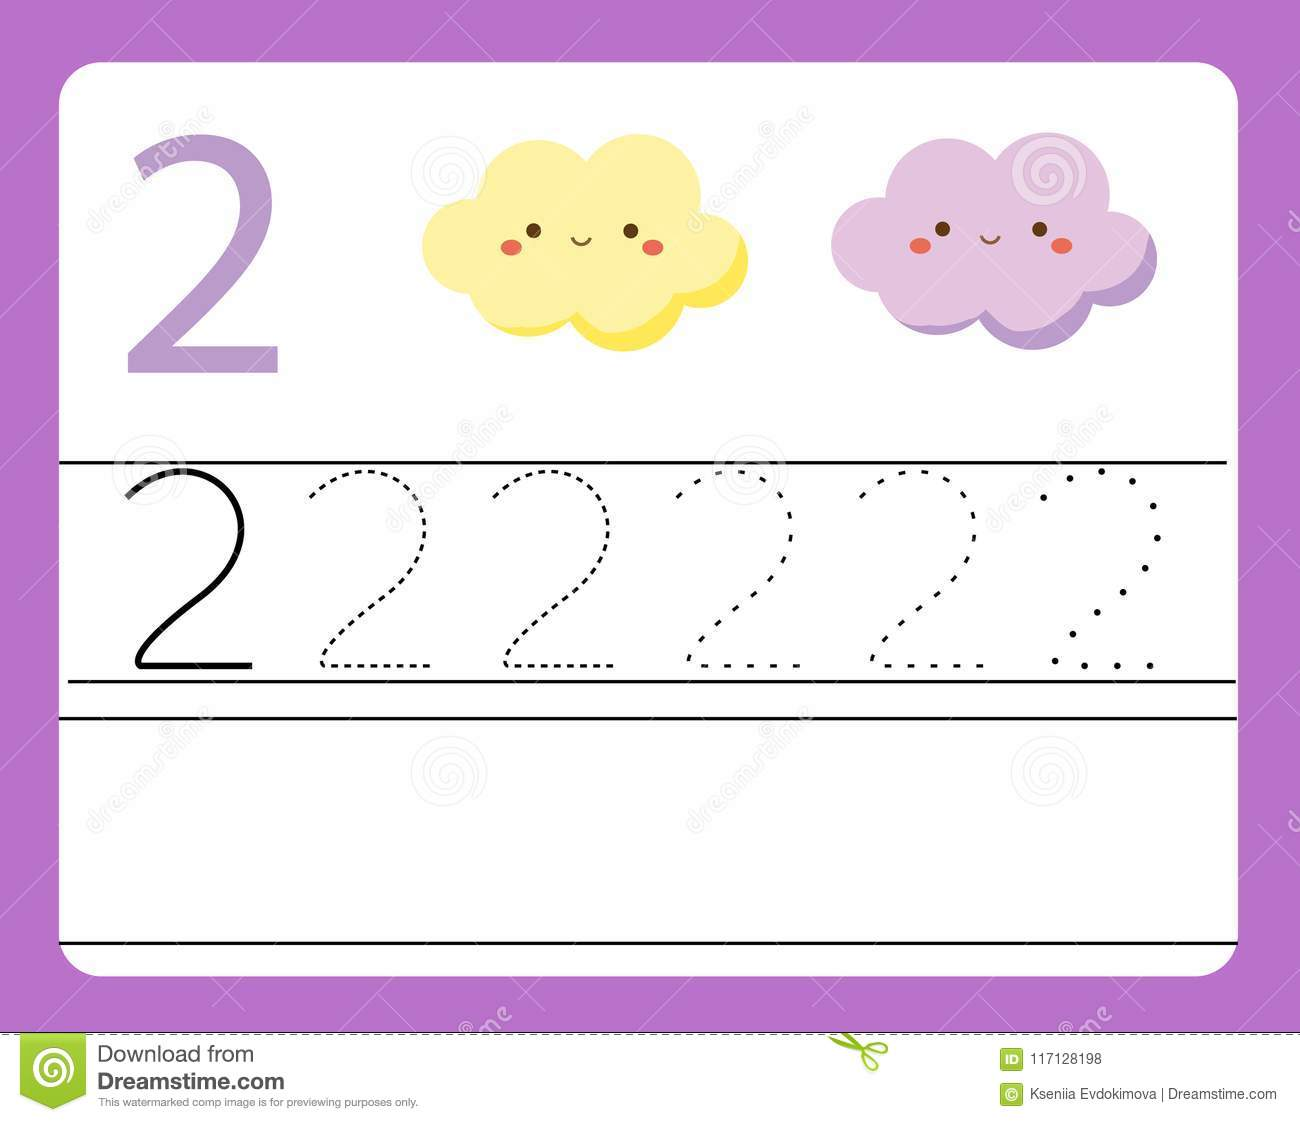 Handwriting Practice Learning Numbers With Cute Characters Number Two Educational Printable Worksheet For Kids And Toddlers Wit Stock Vector Illustration Of Characters Activity 117128198